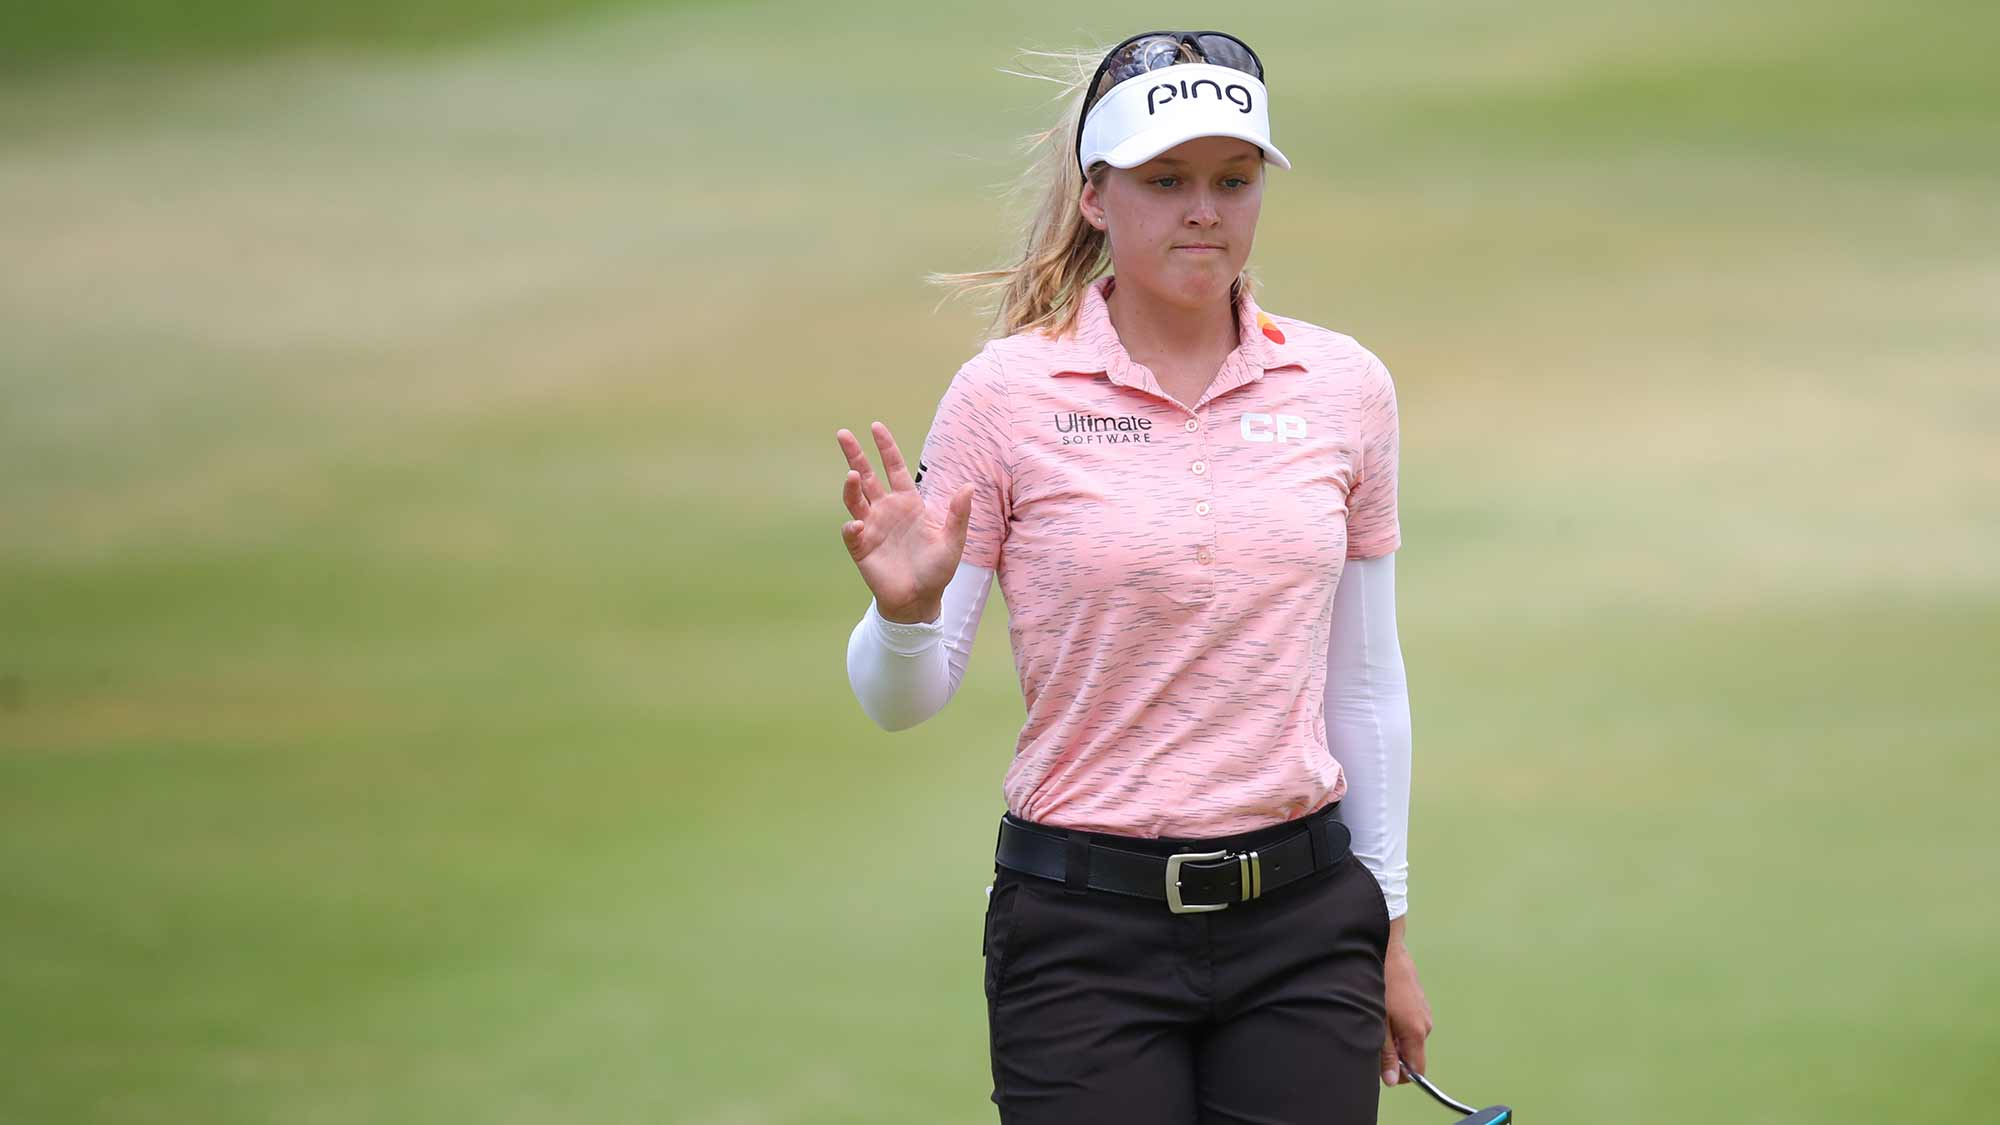 Brooke Henderson of Canada waves to fans after her eagle putt on the fifth green during the final round of the LOTTE Championship at Ko Olina Golf Club on April 21, 2019 in Kapolei, Hawaii